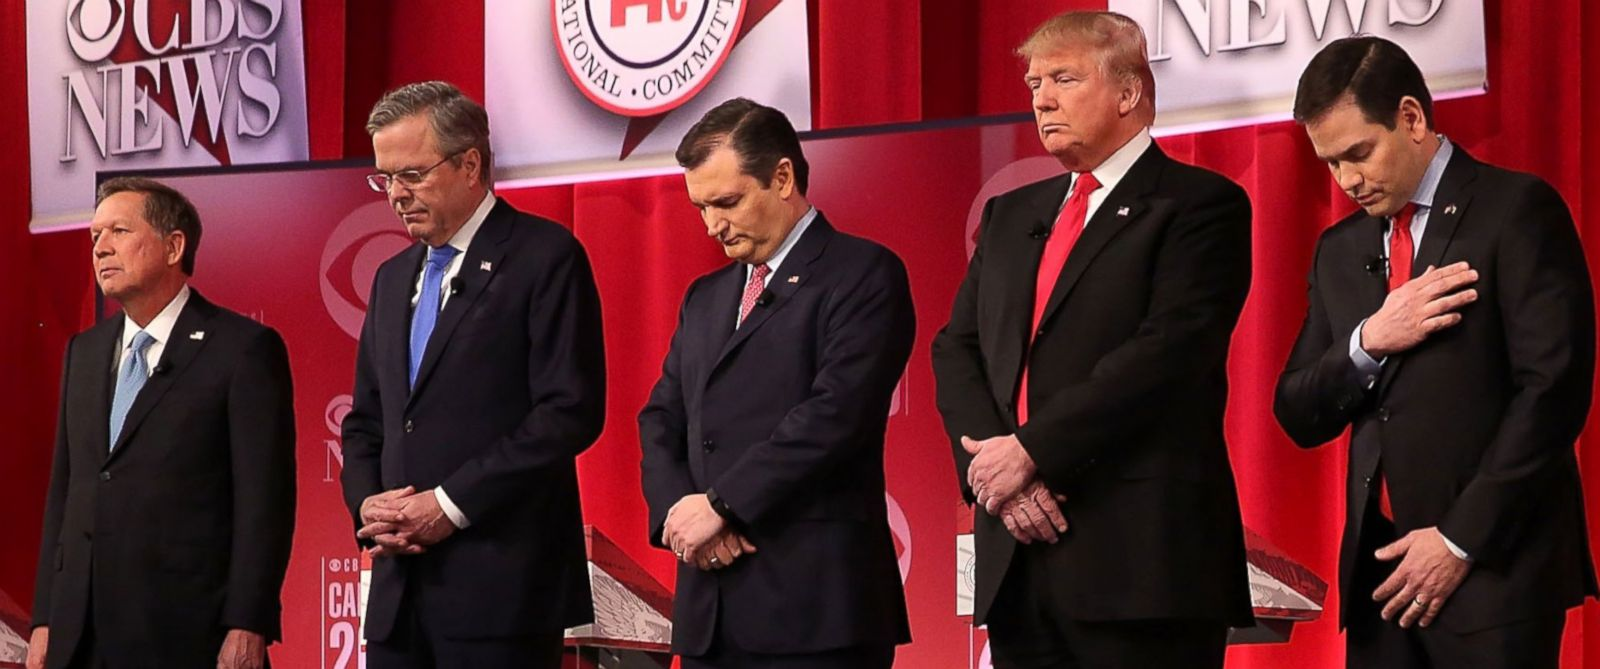 PHOTO: From left, Republican presidential candidates Ohio Gov. John Kasich, Jeb Bush, Sen. Ted Cruz, Donald Trump and Sen. Marco Rubio participated in a moment of silence for U.S. Supreme Court Justice Antonin Scalia, Feb.13, 2016, in Greenville, S.C.